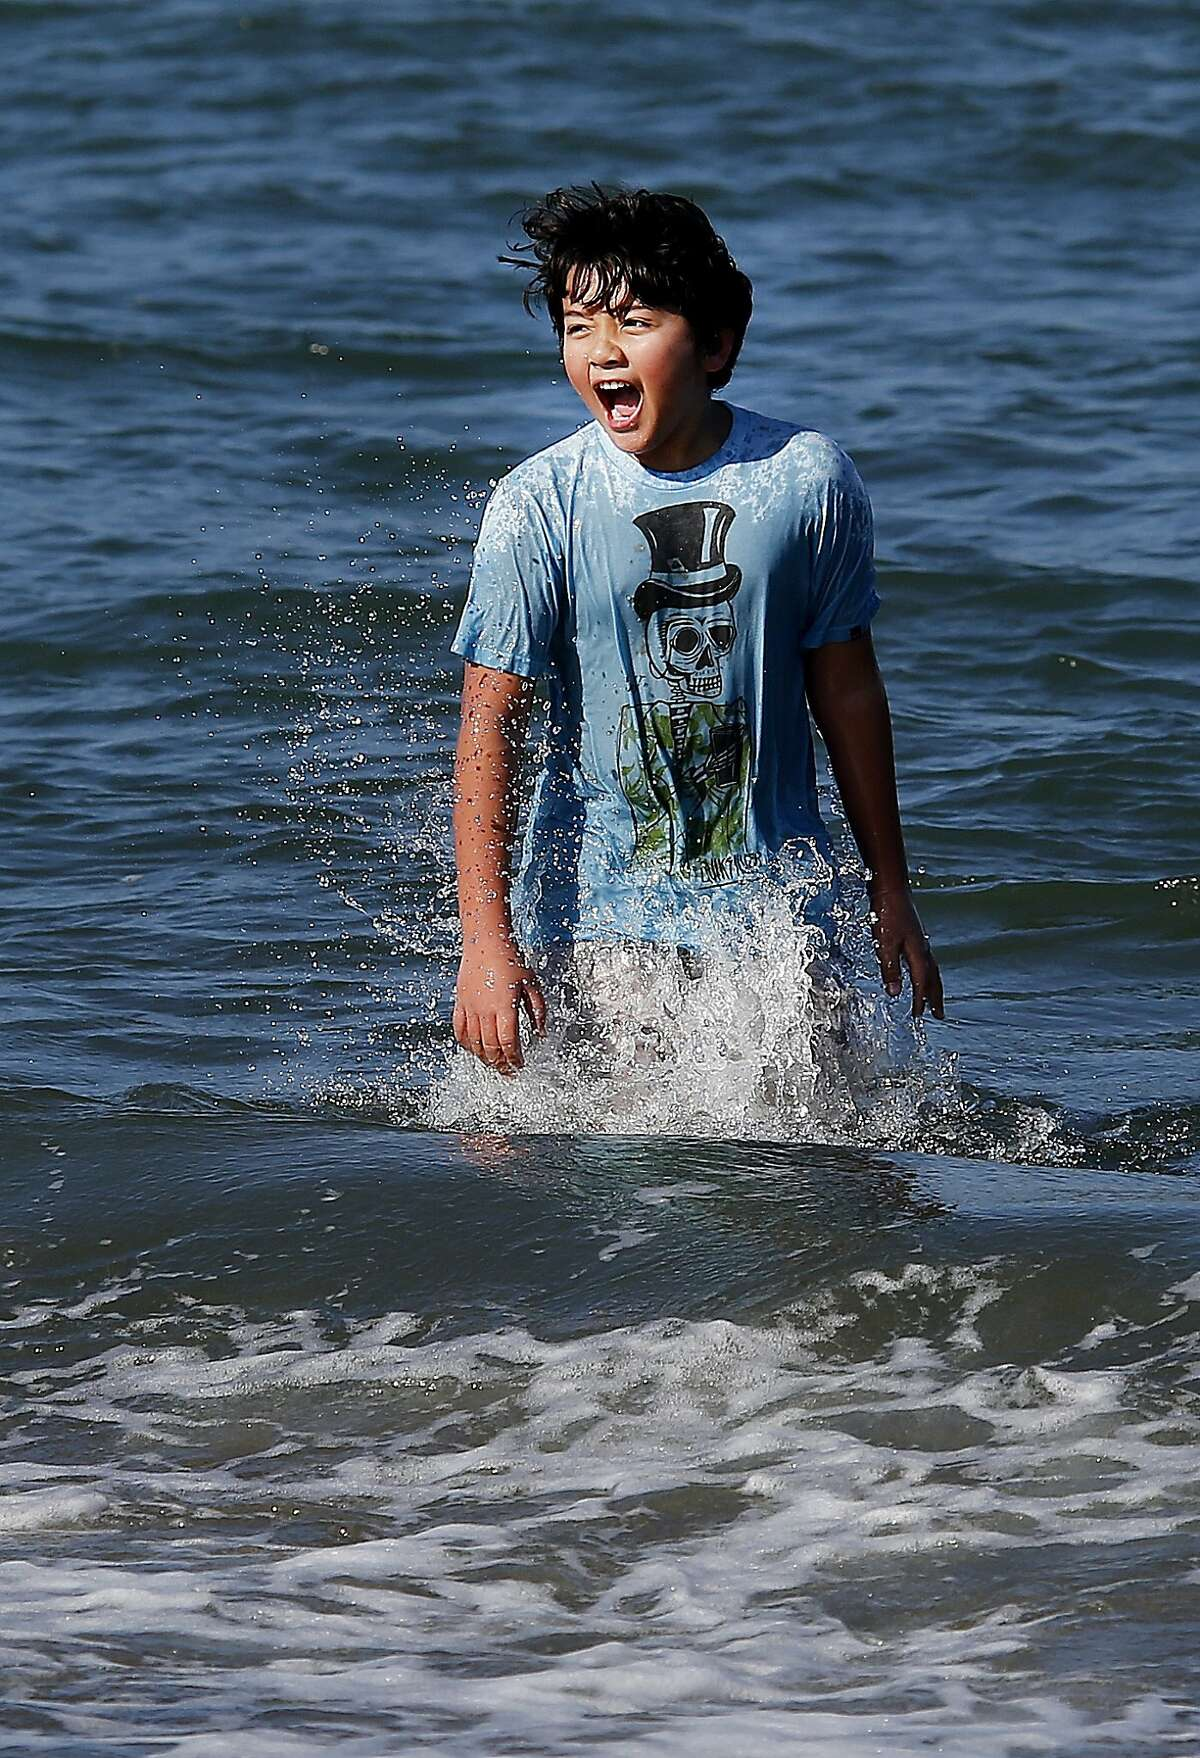 Ten year old Lance Hughston got into the high surf at East Beach despite a chilly wind. Thousands flocked to San Francisco beaches Sunday January 25, 2015. At East Beach near Crissy Field many admitted it was colder than weather reports indicated.